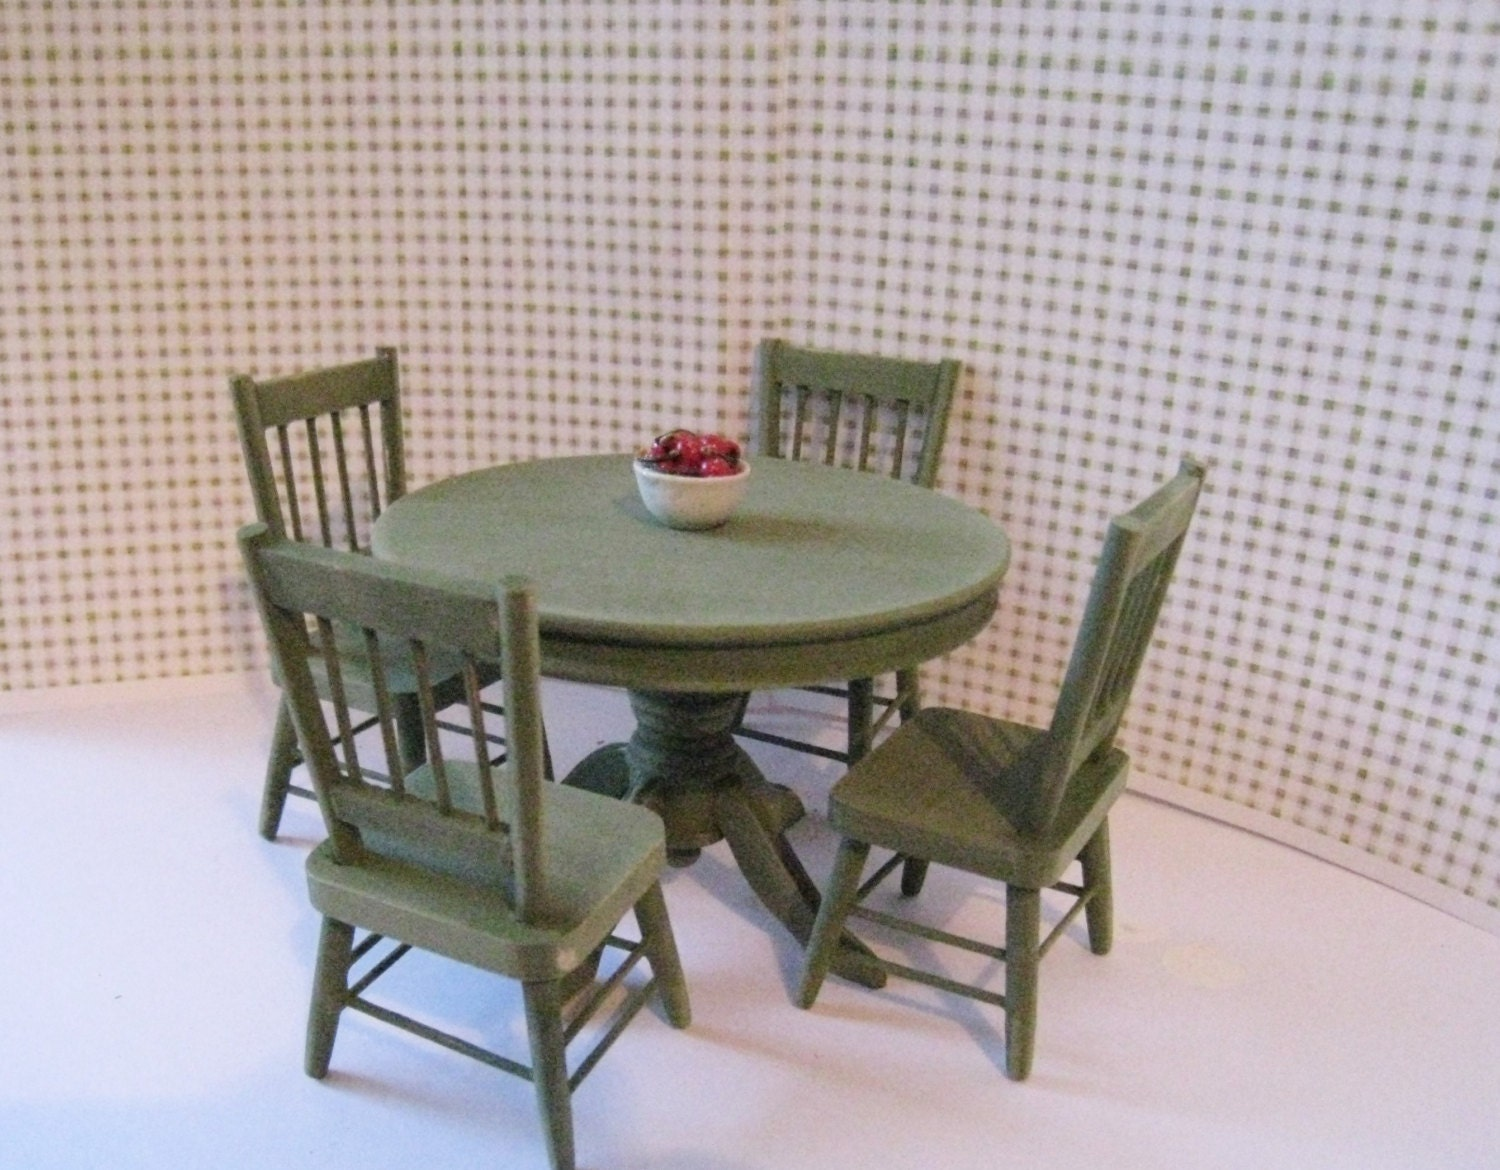 Dollhouse Kitchen table kitchen chairs round table Sage green table sage chairs country table twelfth scale dollhouse miniature